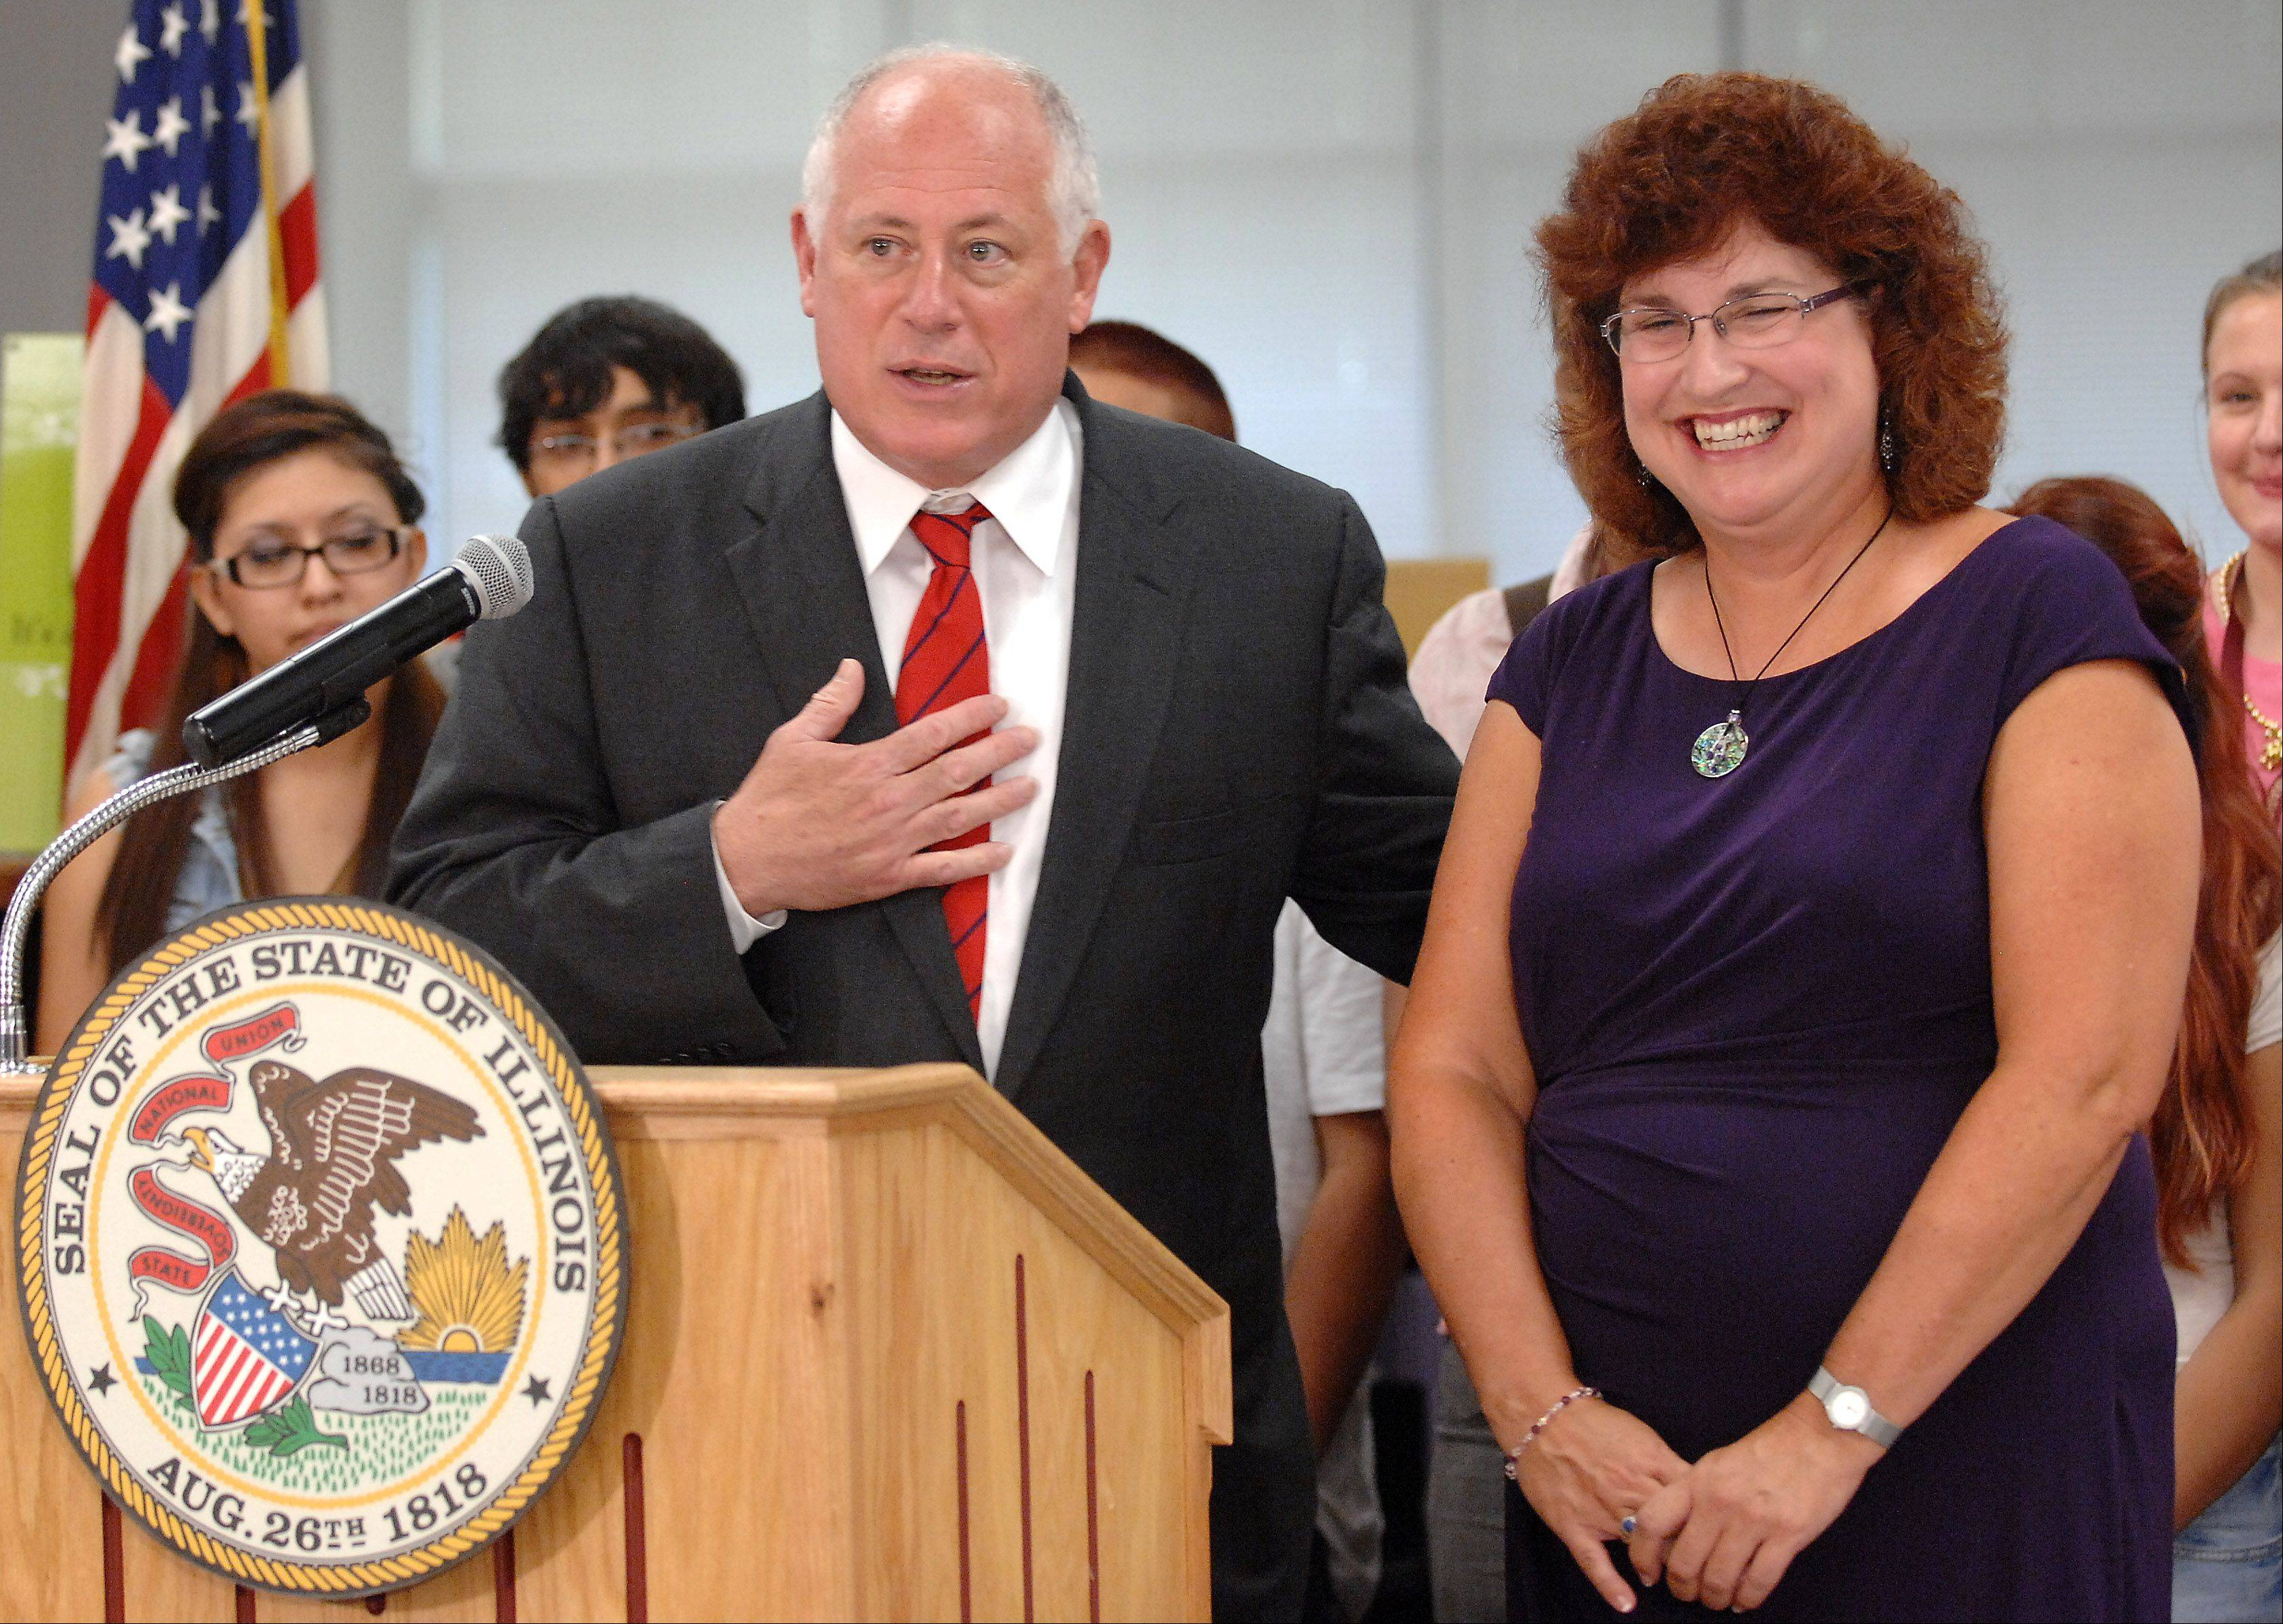 Gov. Pat Quinn extols the virtues of Elgin High School teacher Carolyn Gilbert Monday before signing a bill at the school that will allow the police to share information with schools if there is an investigation of a student. The bill is in response to an attack on Gilbert.